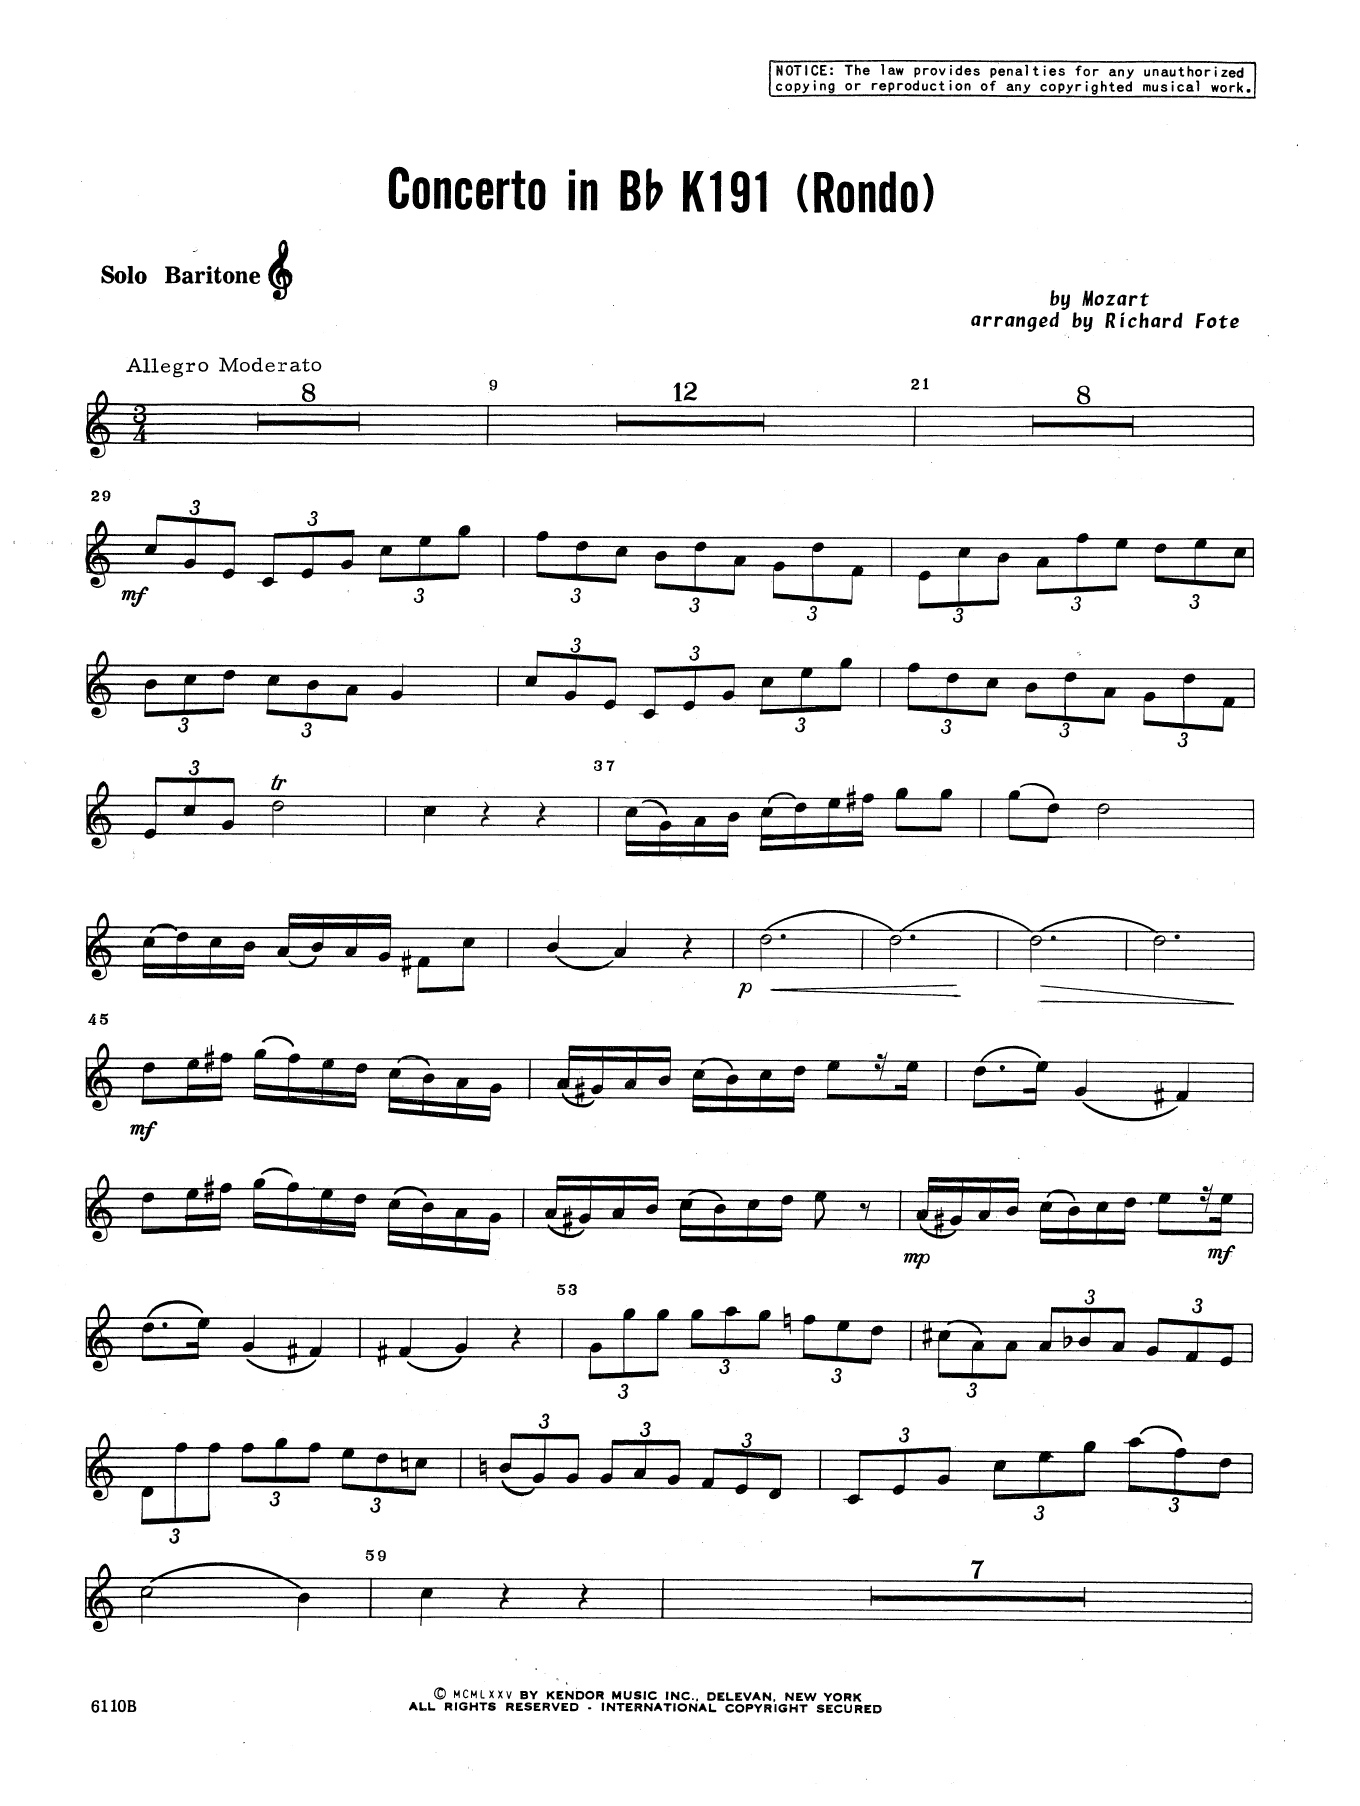 Richard Fote Concerto In Bb K191 (Rondo) - Baritone T.C. sheet music notes and chords. Download Printable PDF.